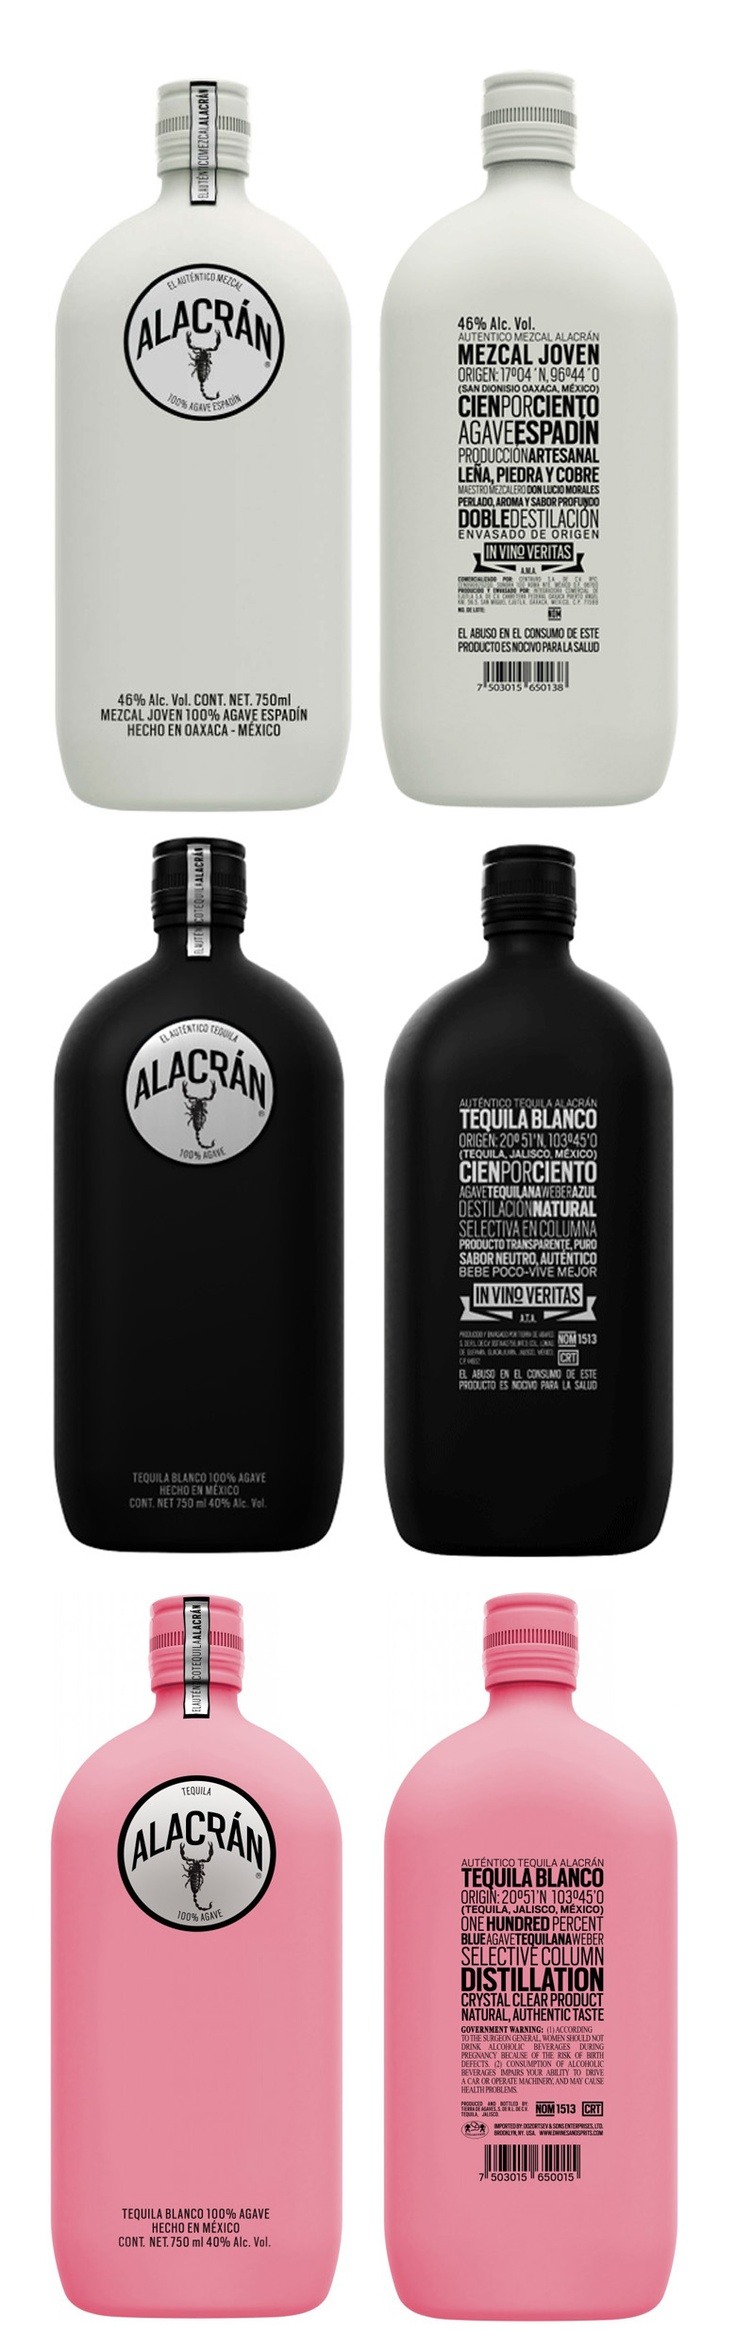 Alacran Tequilas - including the special Limited Pink Edition to support Breast Cancer Research.